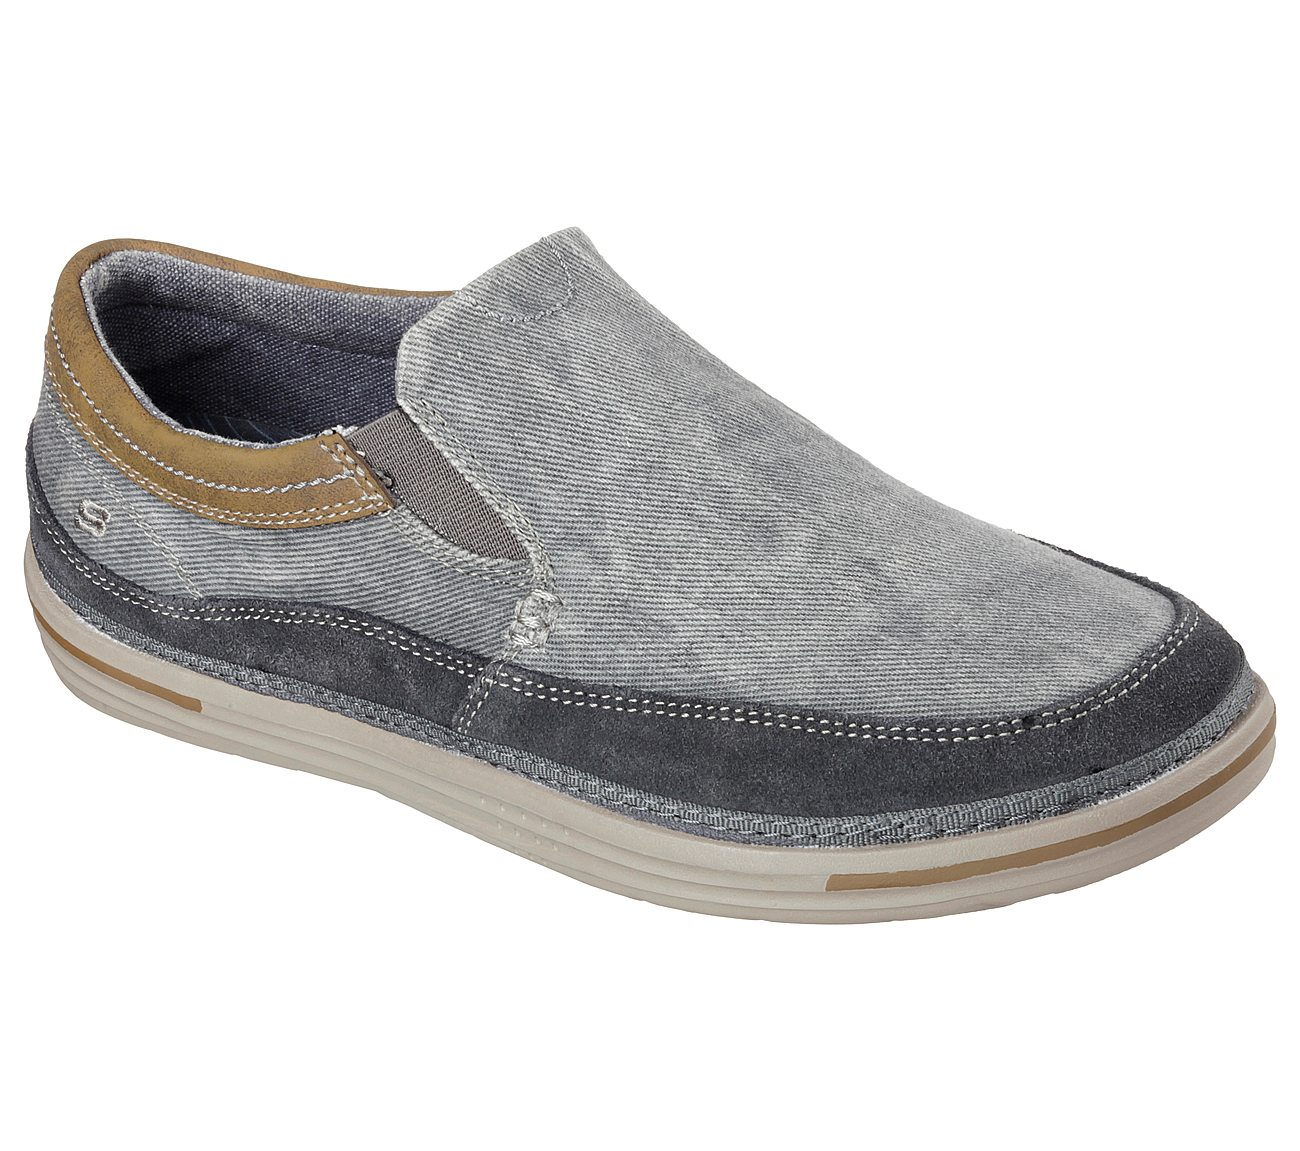 Mens Casual Shoes Skechers Relaxed Fit Steller 64355 Grey Mens Shoes Casual Shoes save 75